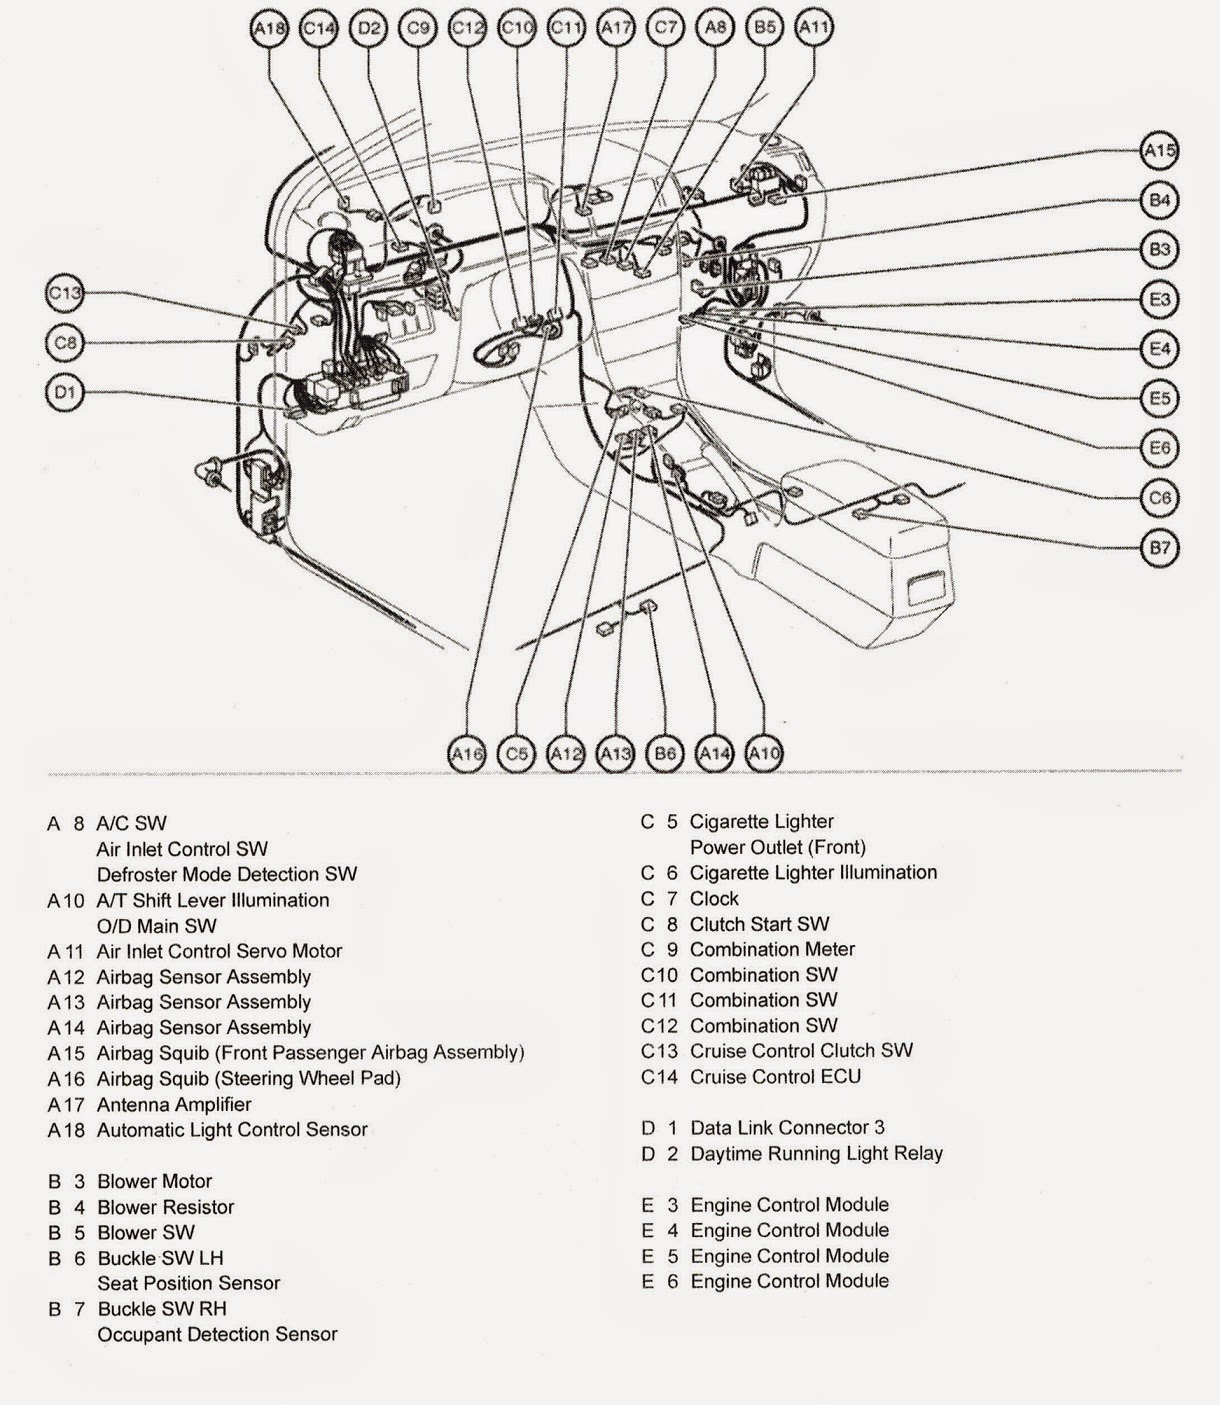 [DIAGRAM] Opel Astra G Ac Wiring Diagram FULL Version HD